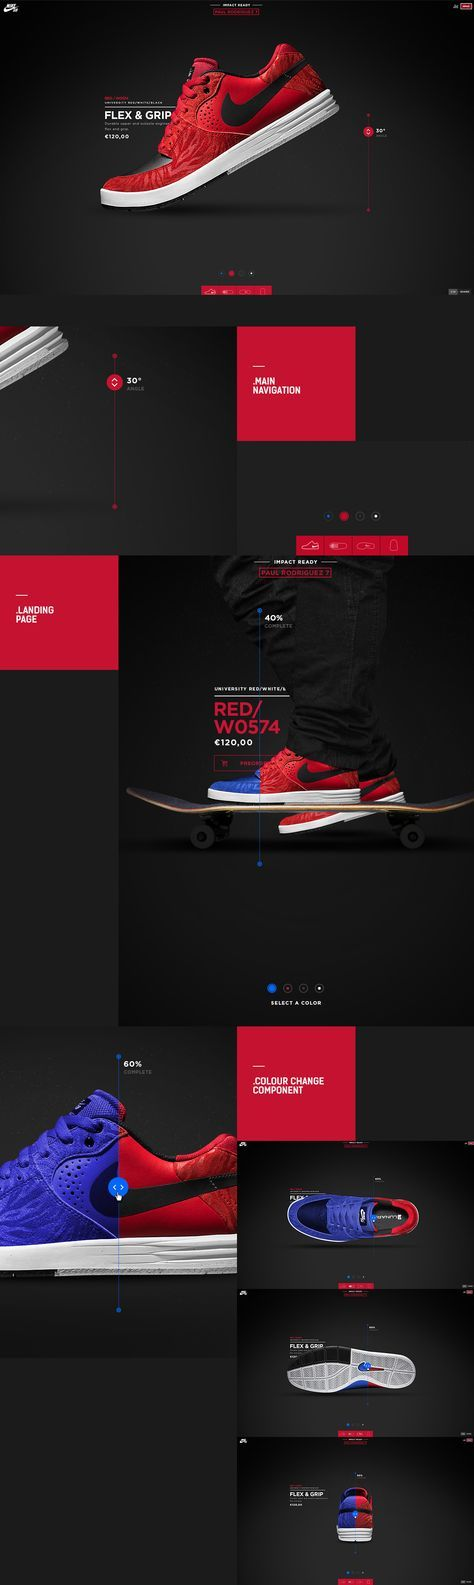 Nike sneaker websites webdesign